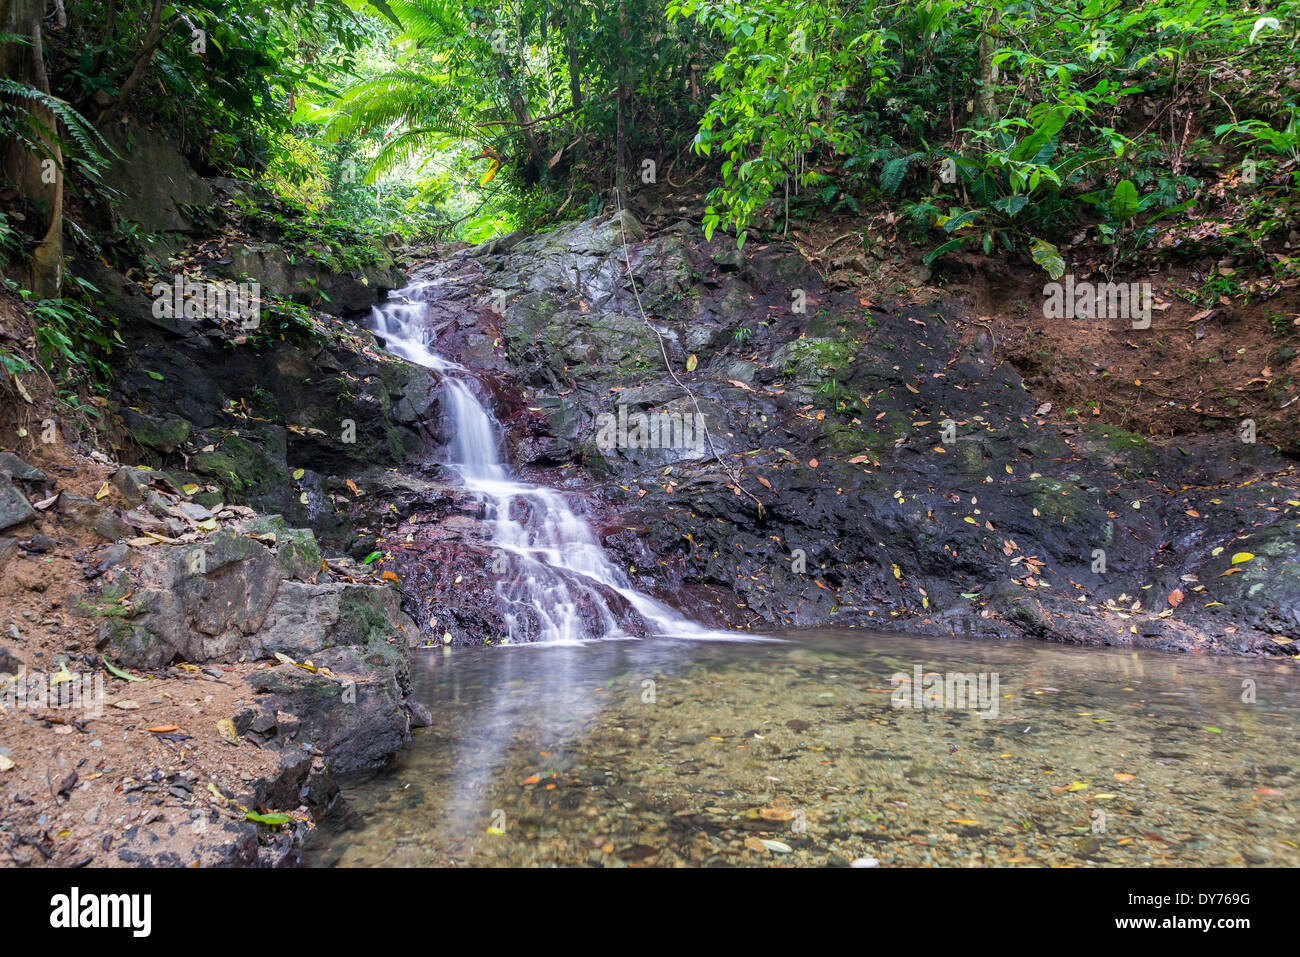 Small waterfall in a dense tropical rainforest near Capurgana, Colombia - Stock Image